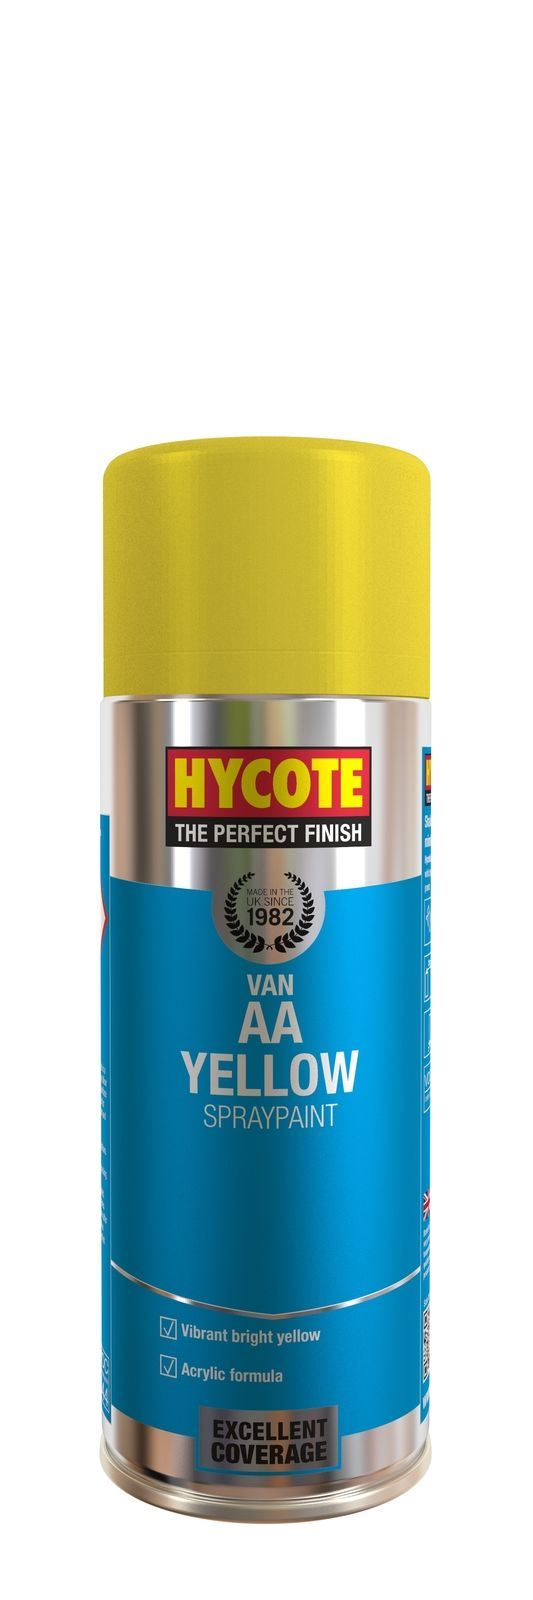 Hycote AA Van Yellow Paint - 400ml